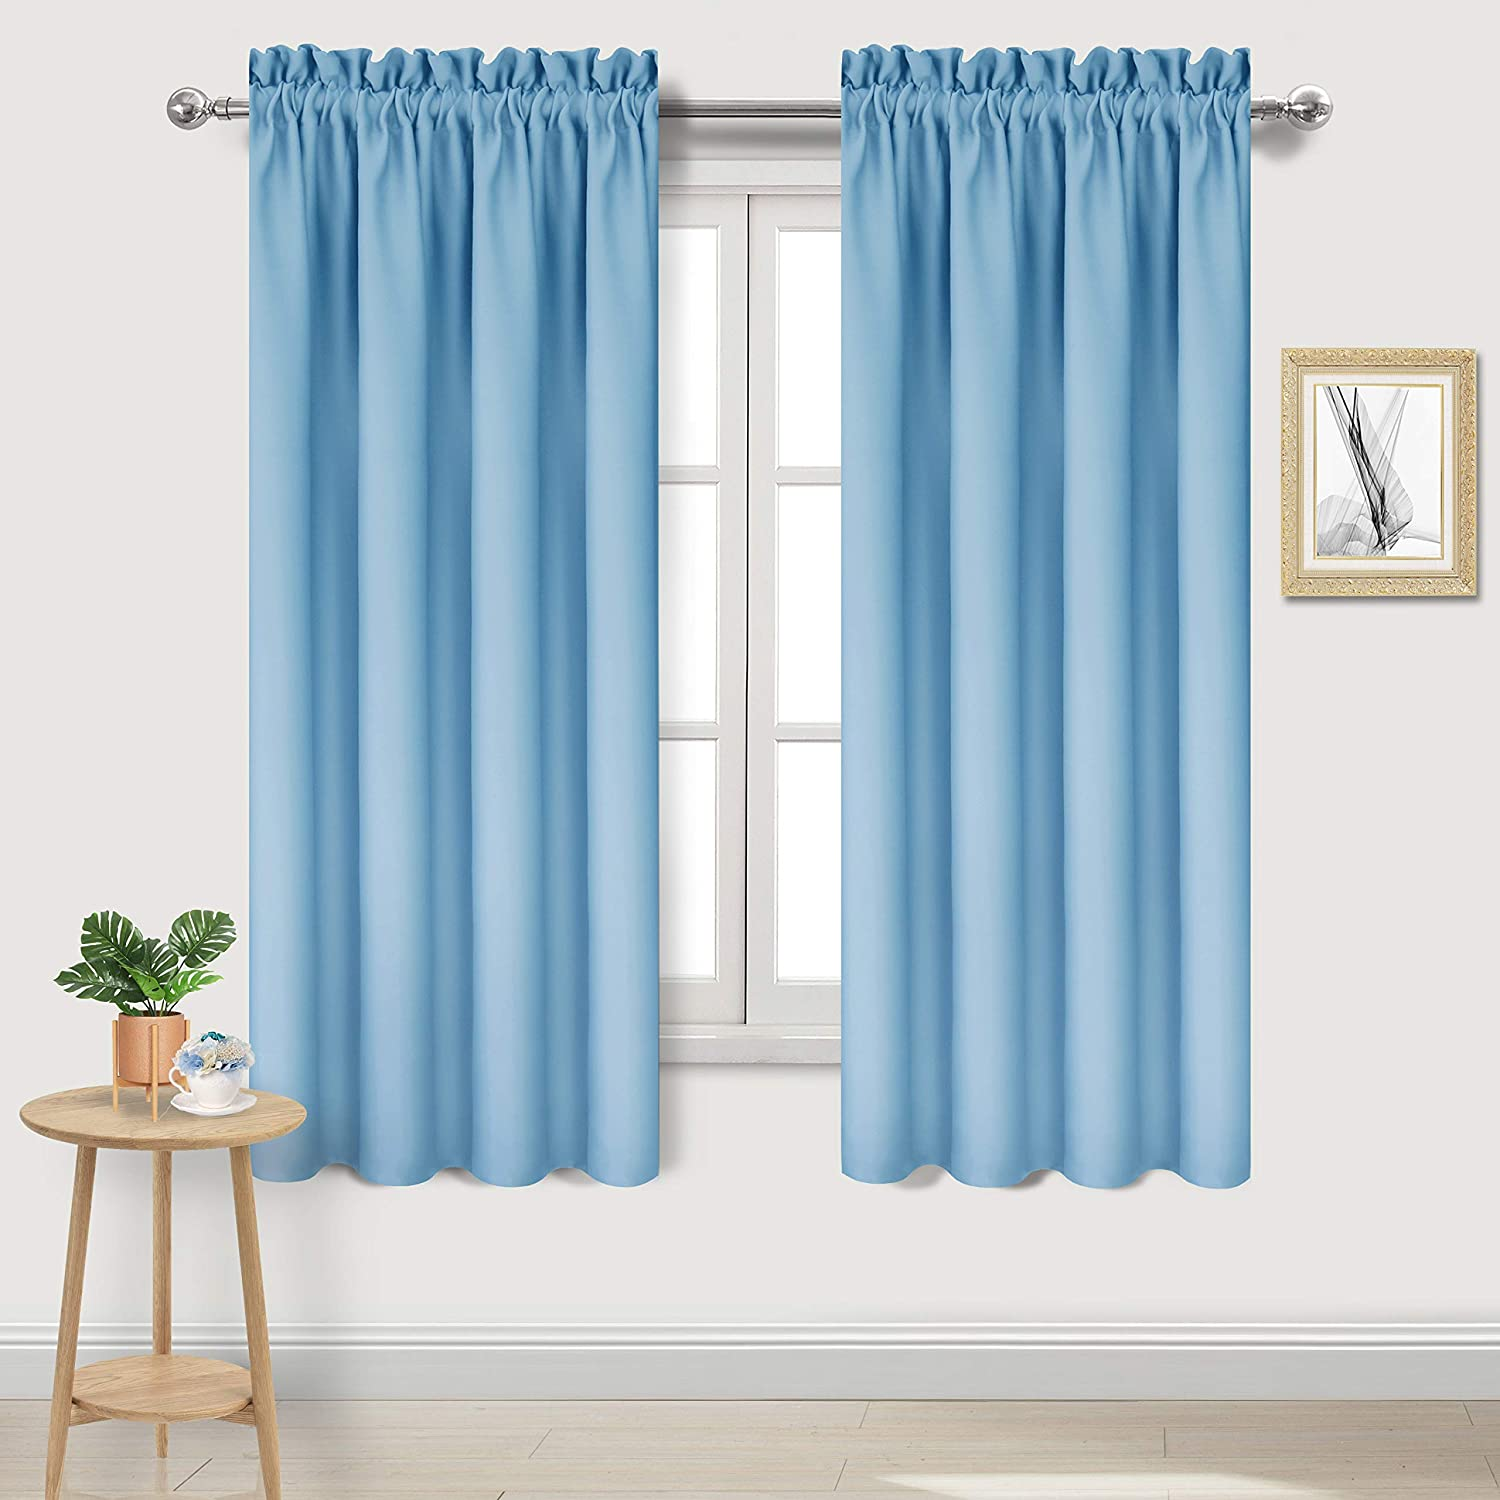 DWCN Blackout Curtains – Thermal Insulated, Energy Saving & Noise Reducing Bedroom and Living Room Curtains, Light Blue, W 42x L 63 Inch, Set of 2 Rod Pocket Curtain Panels